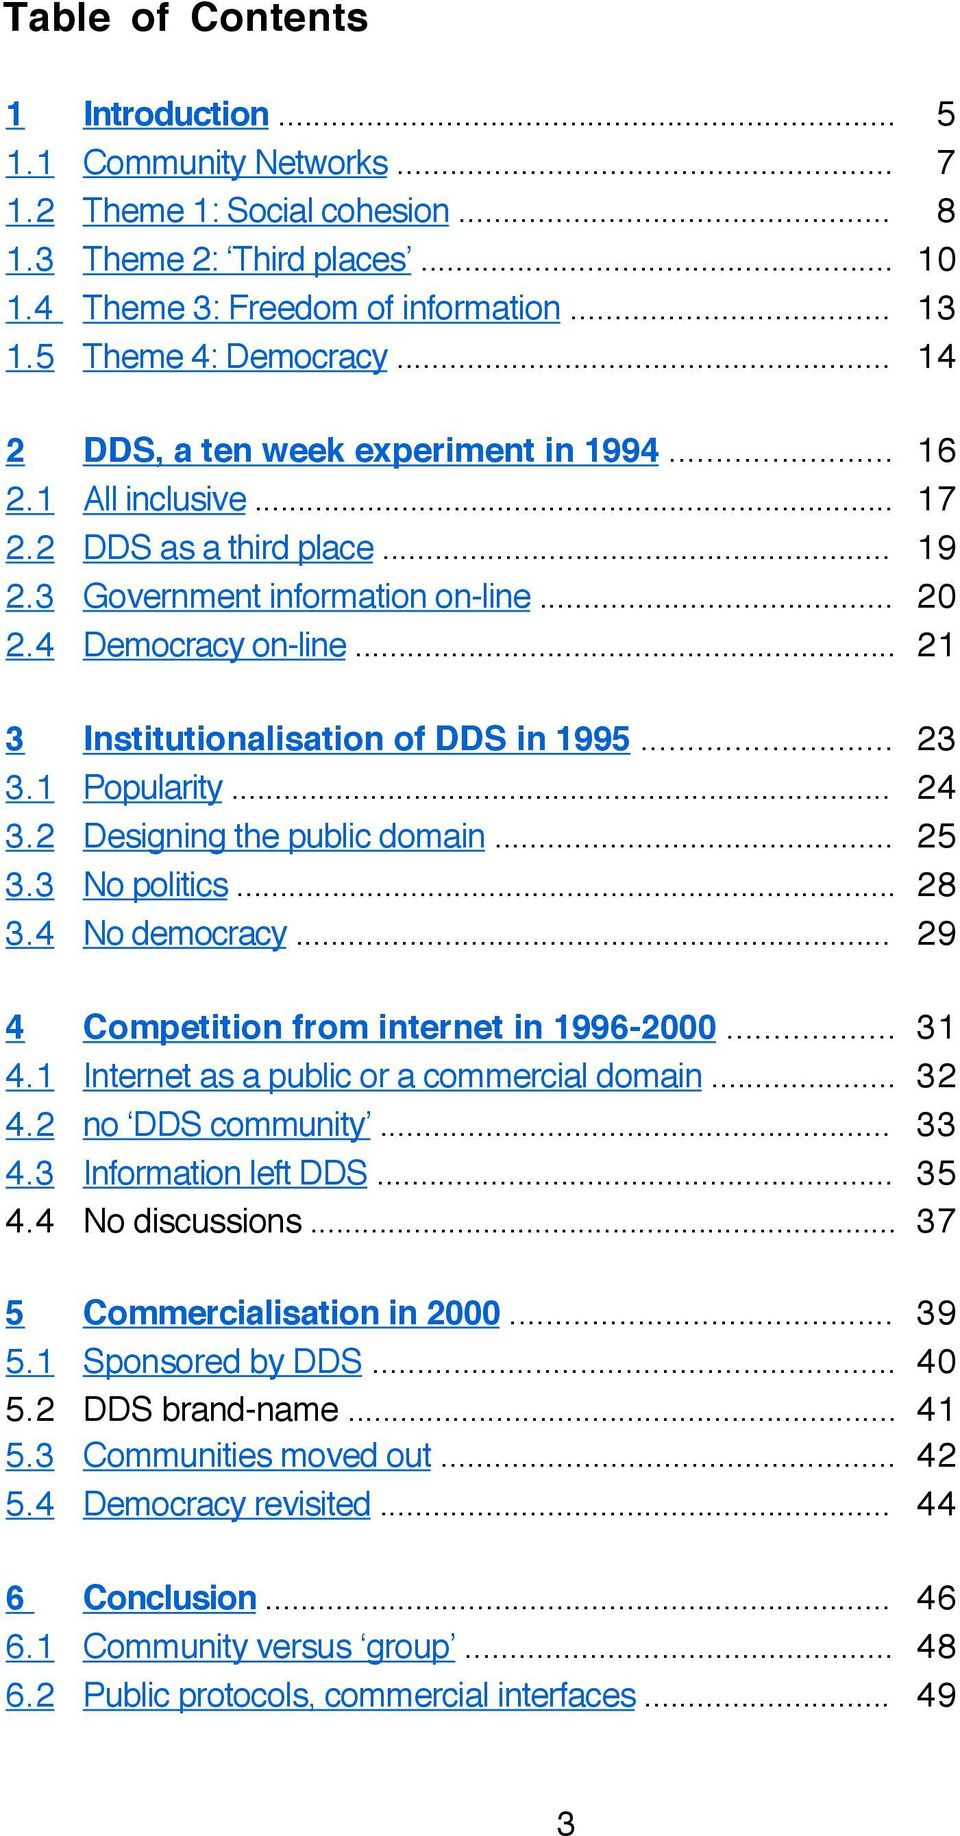 .. 21 3 Institutionalisation of DDS in 1995... 23 3.1 Popularity... 24 3.2 Designing the public domain... 25 3.3 No politics... 28 3.4 No democracy... 29 4 Competition from internet in 1996-2000.